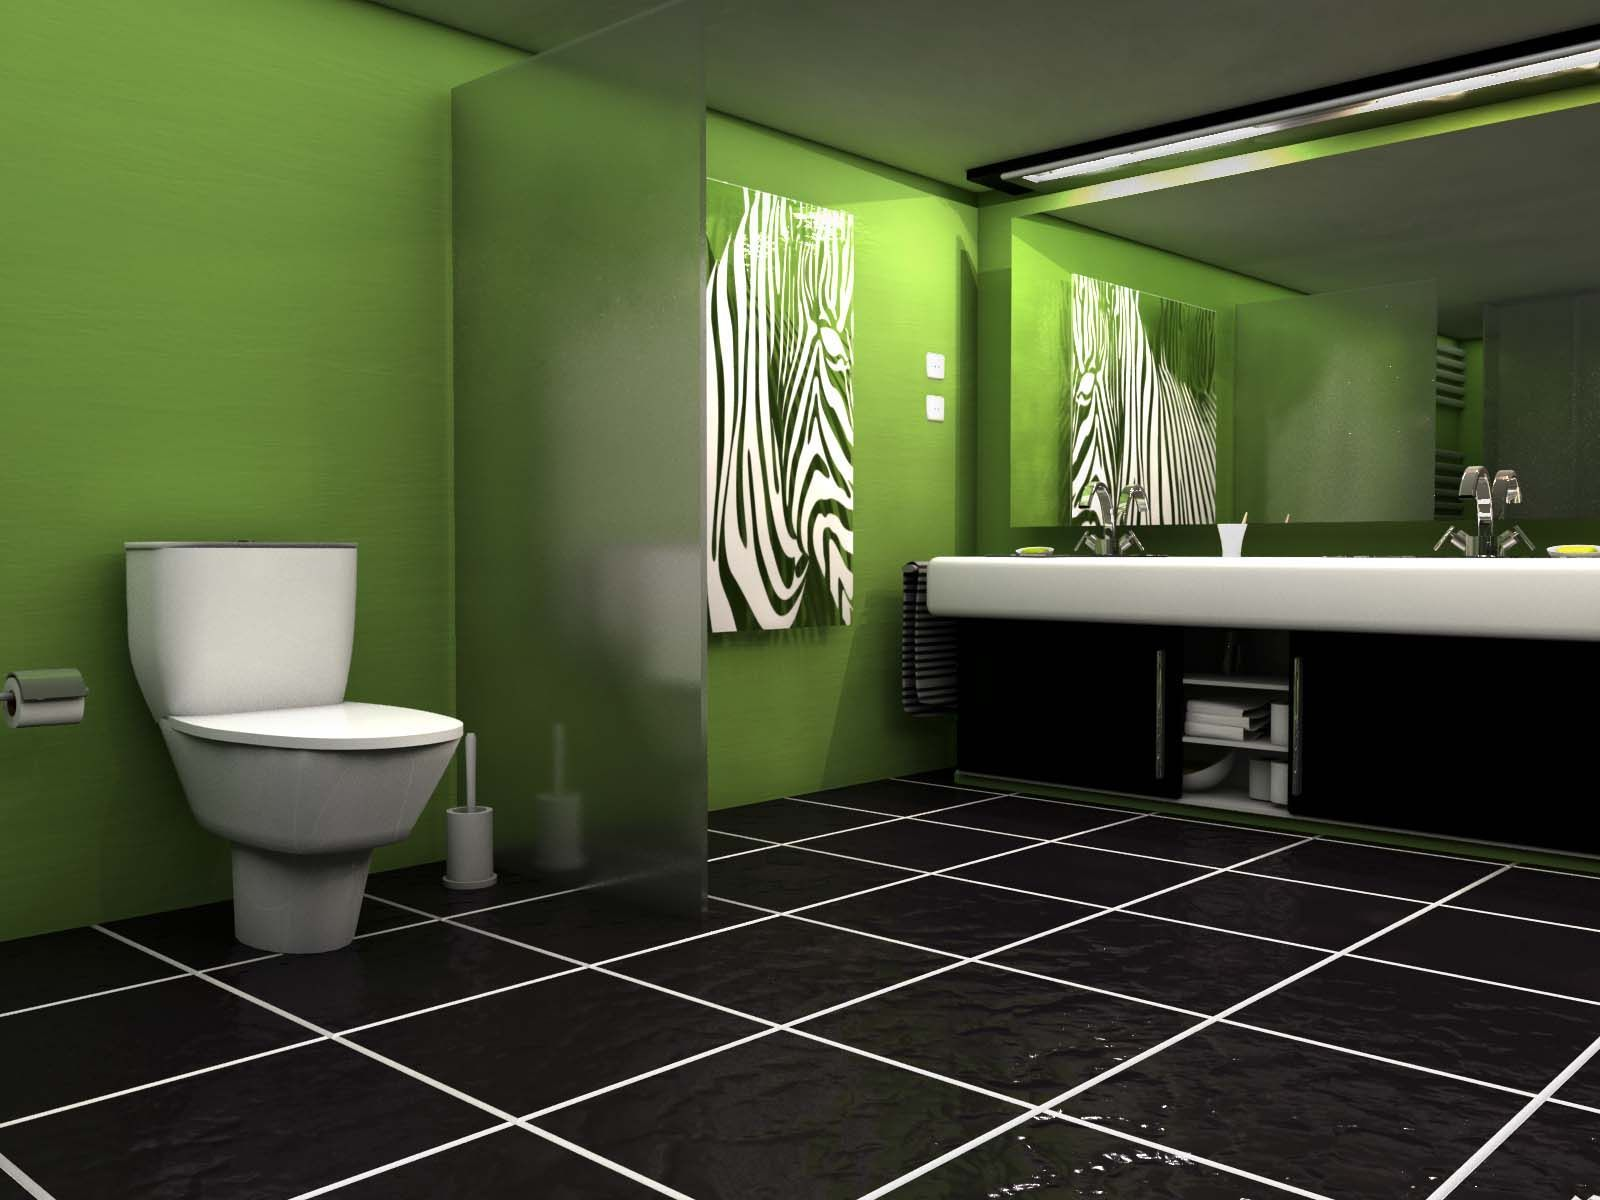 Yes Please What A Great Colour Scheme Green With Envy - Bathroom cleaners with bleach for bathroom decor ideas